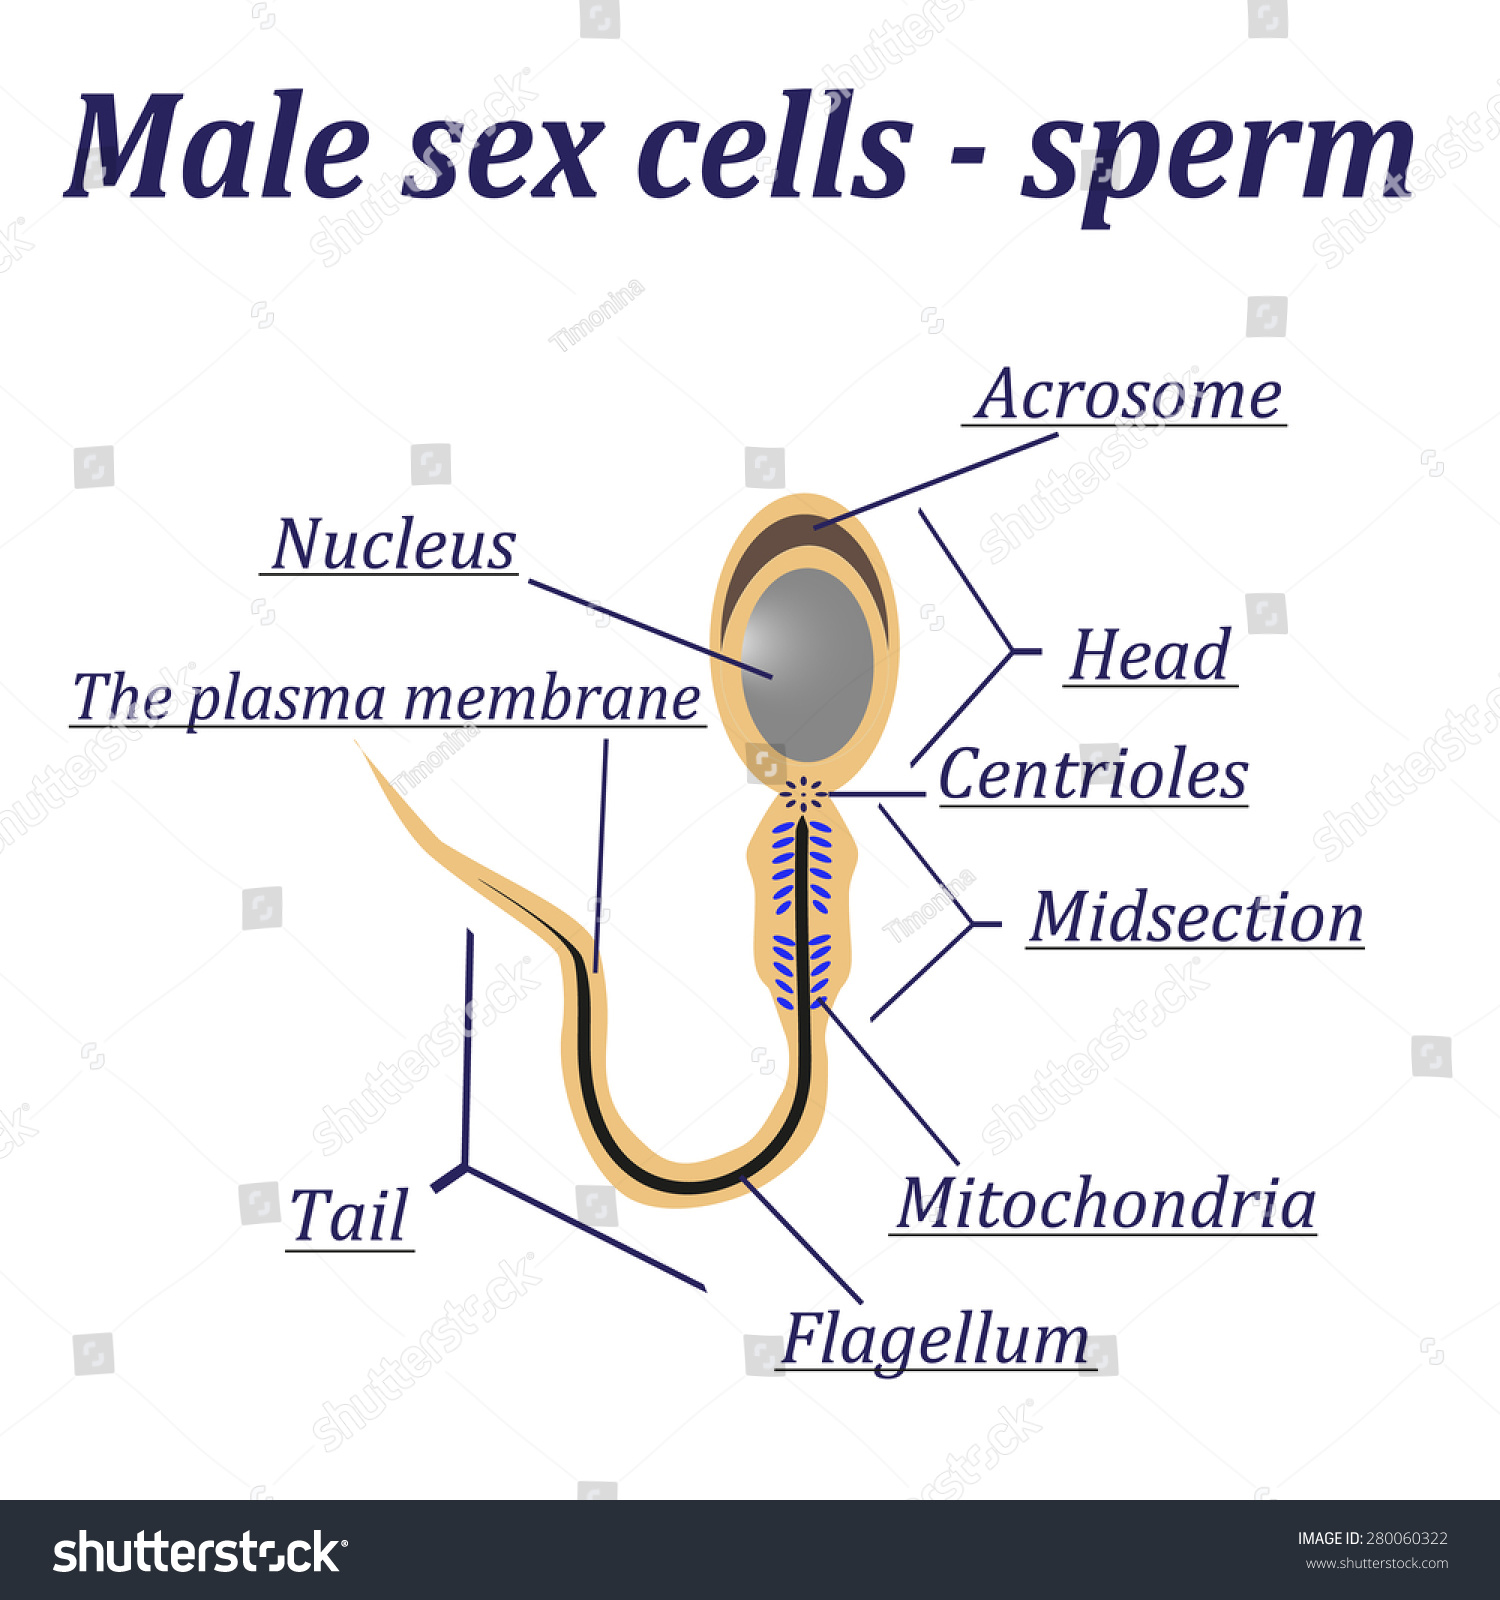 Vitamins for low sperm count